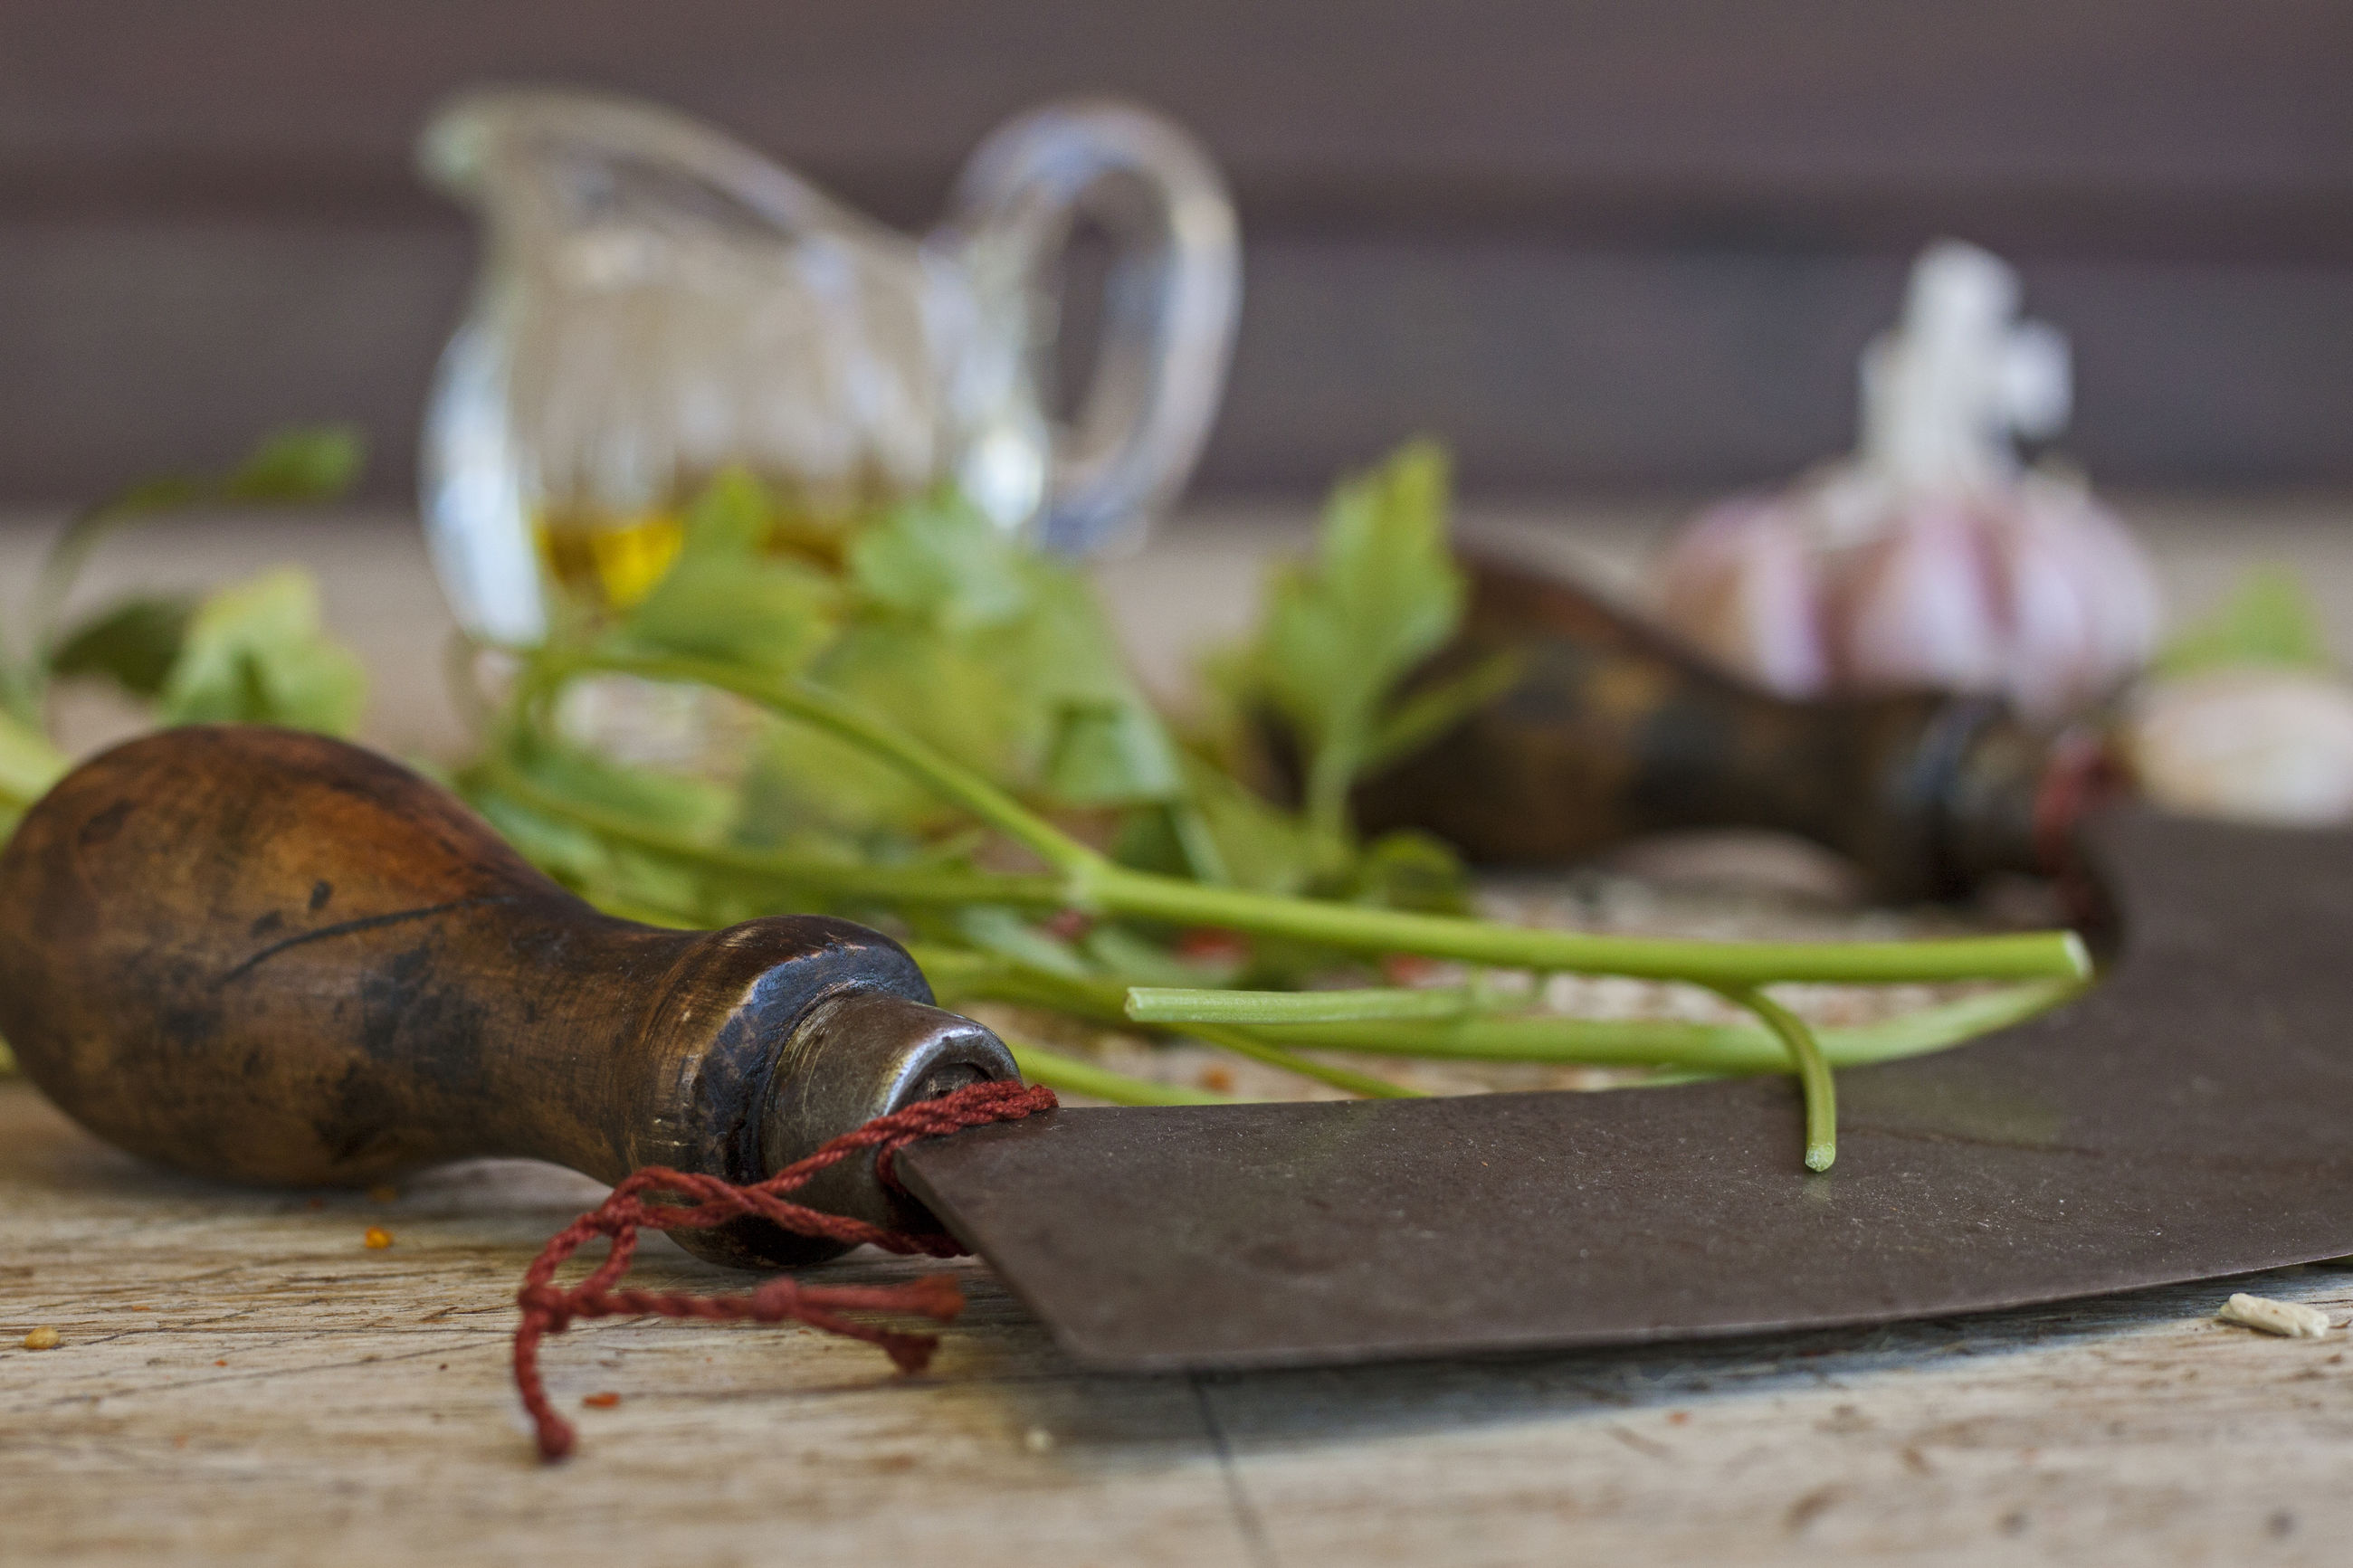 Close-up of mincing knife by cilantro leaves and spice on table